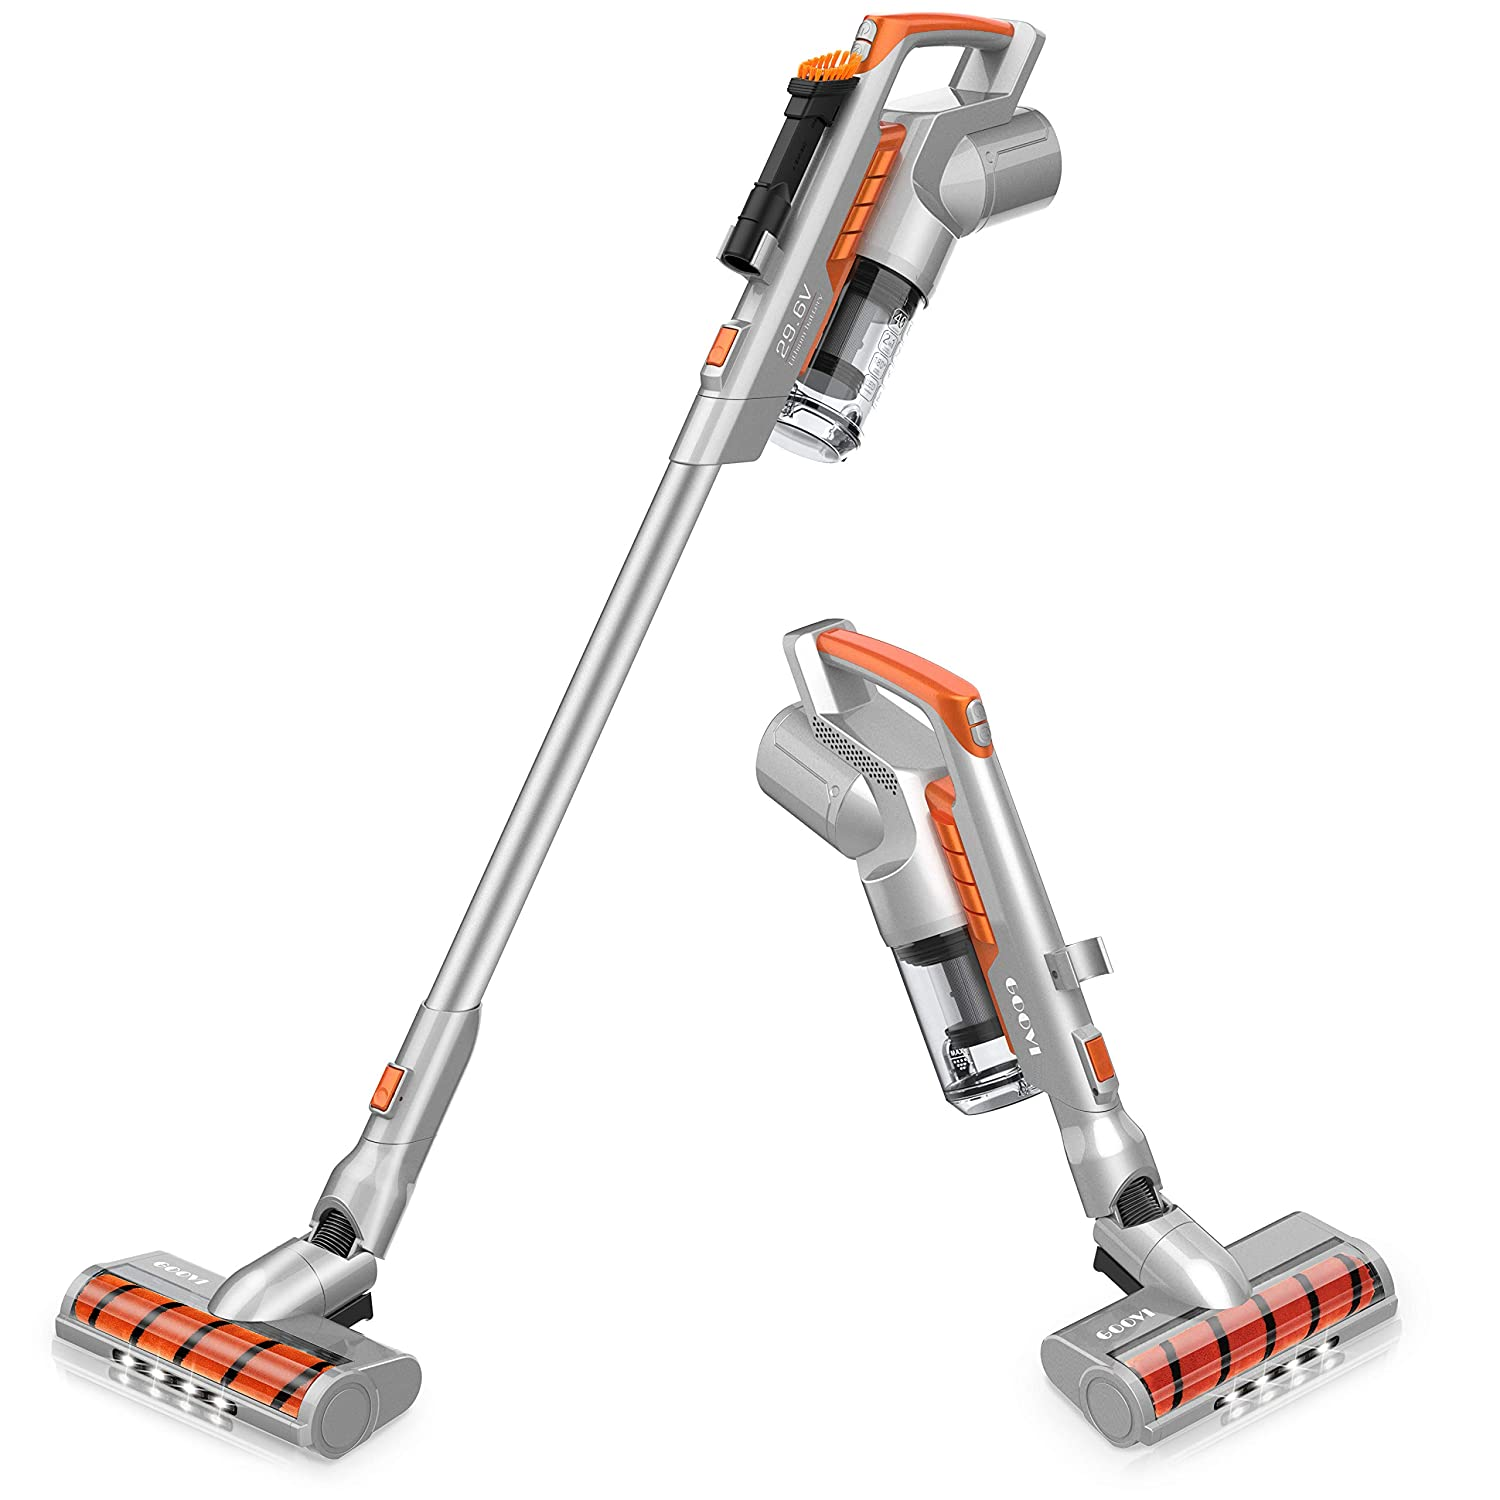 Cordless Vacuum, GOOVI Stick Vacuum Cleaner, Powerful Cleaning Lightweight 2 in 1 Handheld Vacuum with Rechargeable Lithium Ion Battery and LED Brush